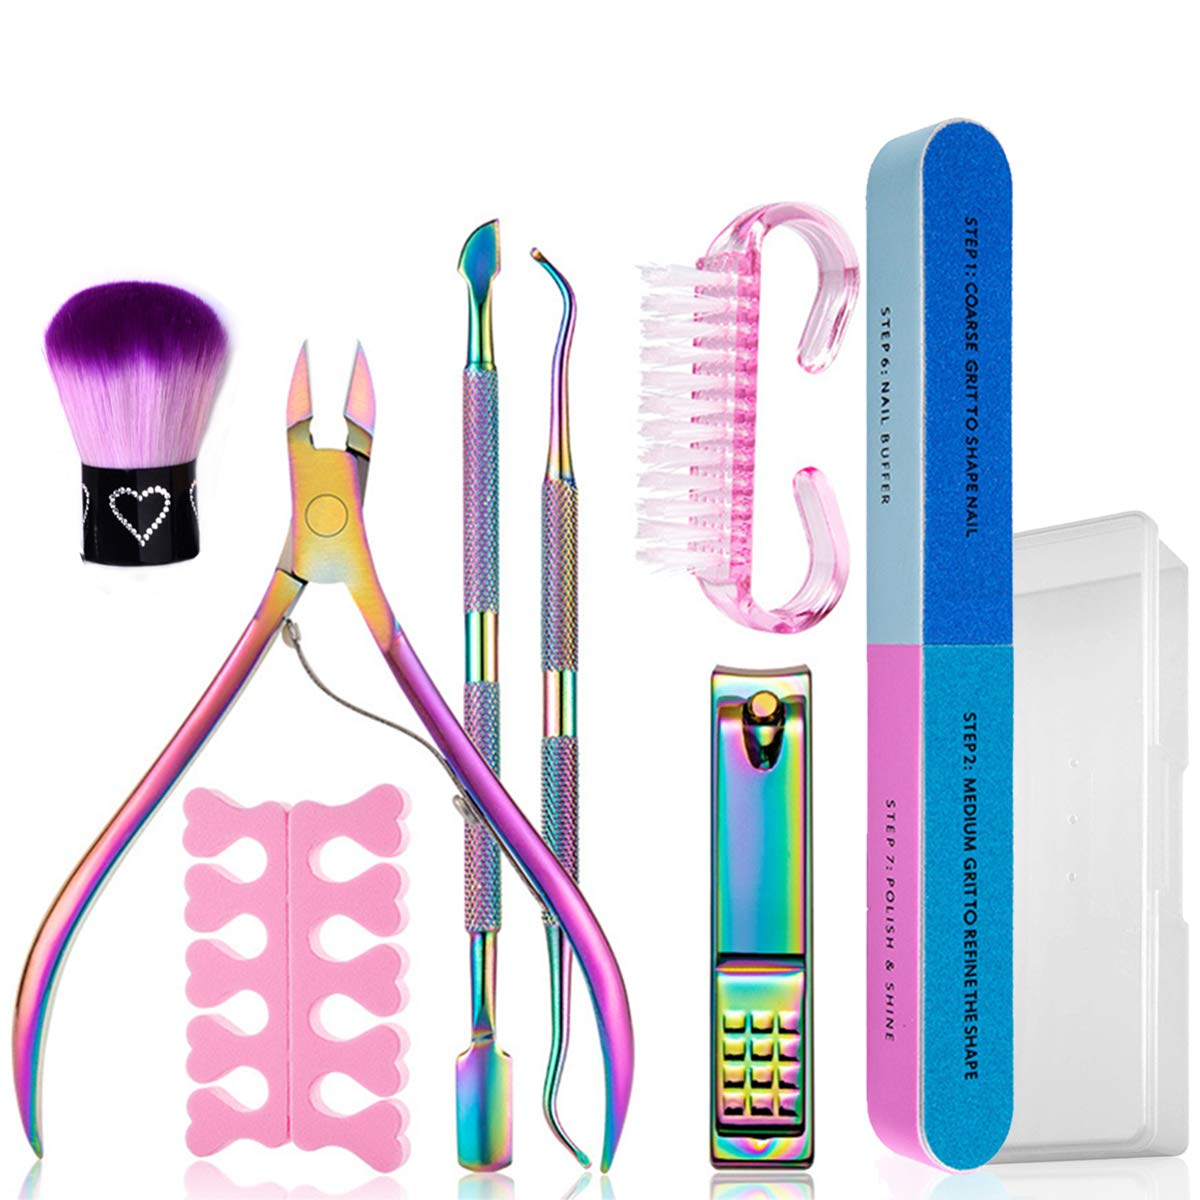 8PCS Manicure Set Nail Limited time for free shipping Clippers Cuticle Kit Max 68% OFF Trimmer Pedicure S